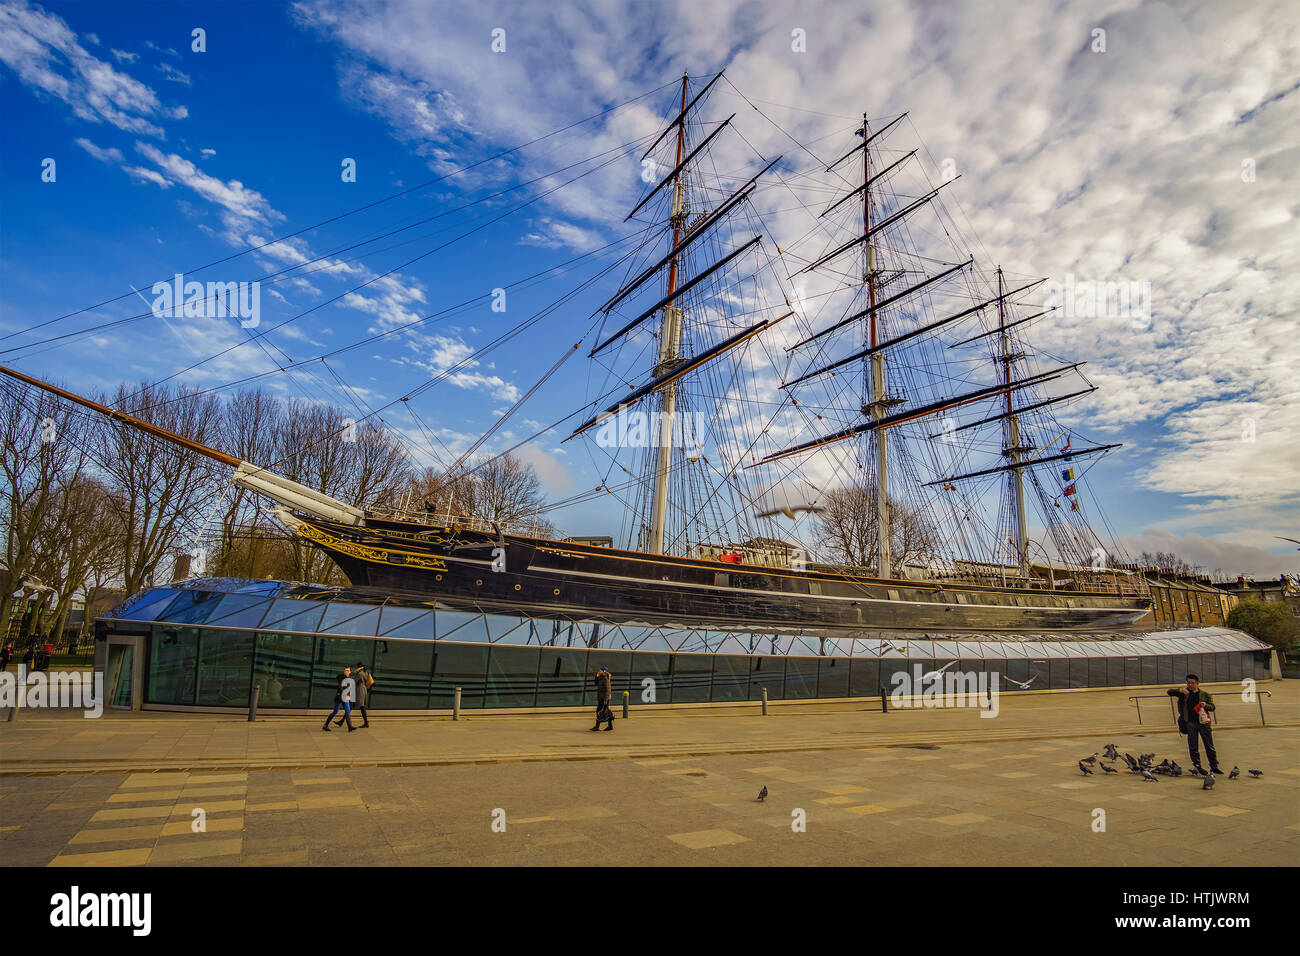 """The legendary 19th century sailing ship """"Cutty Sark"""" a tall ship on public display in Greenwich, United Kingdom. Stock Photo"""